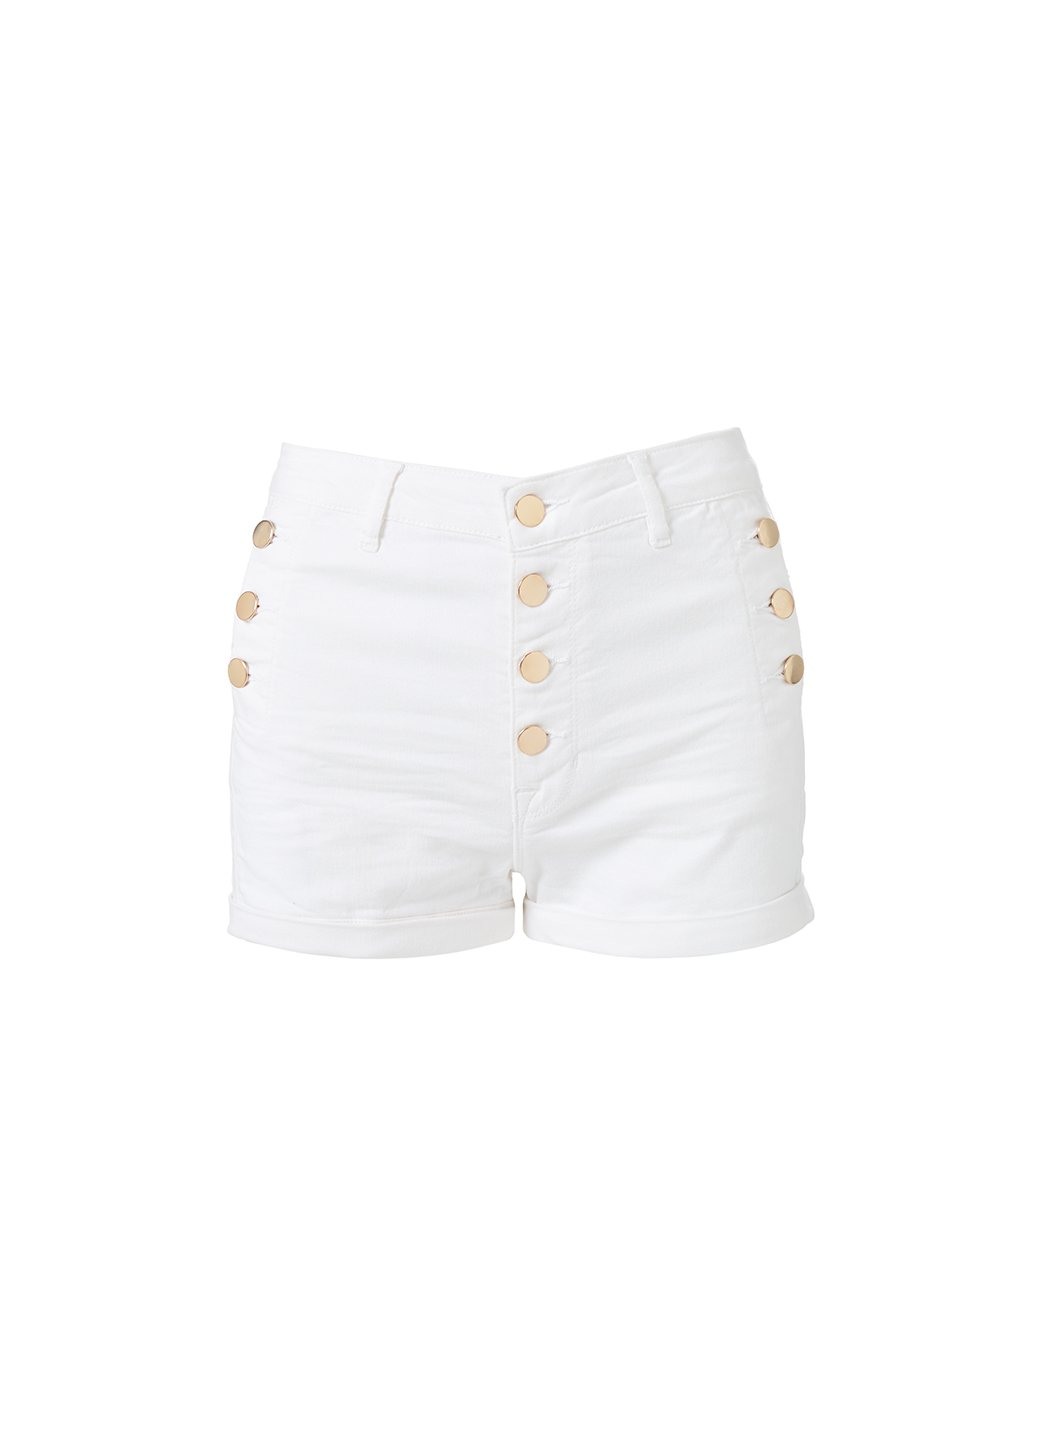 Yanni White Shorts